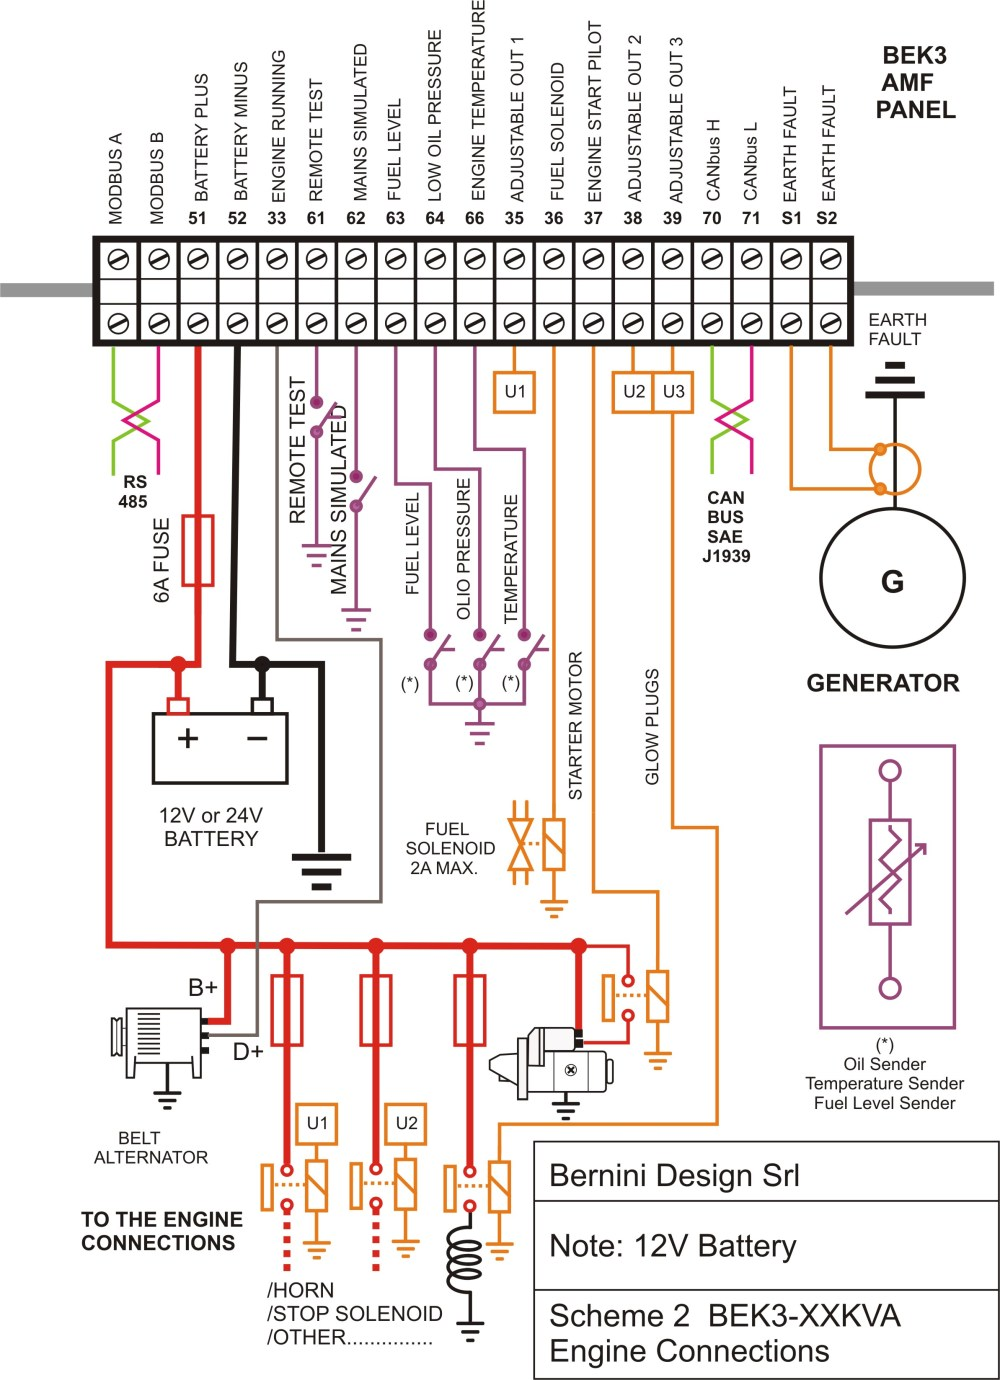 medium resolution of plc control panel wiring diagram pdf 2387x3295 car diagram electrical drawing basics pdf zen diagram